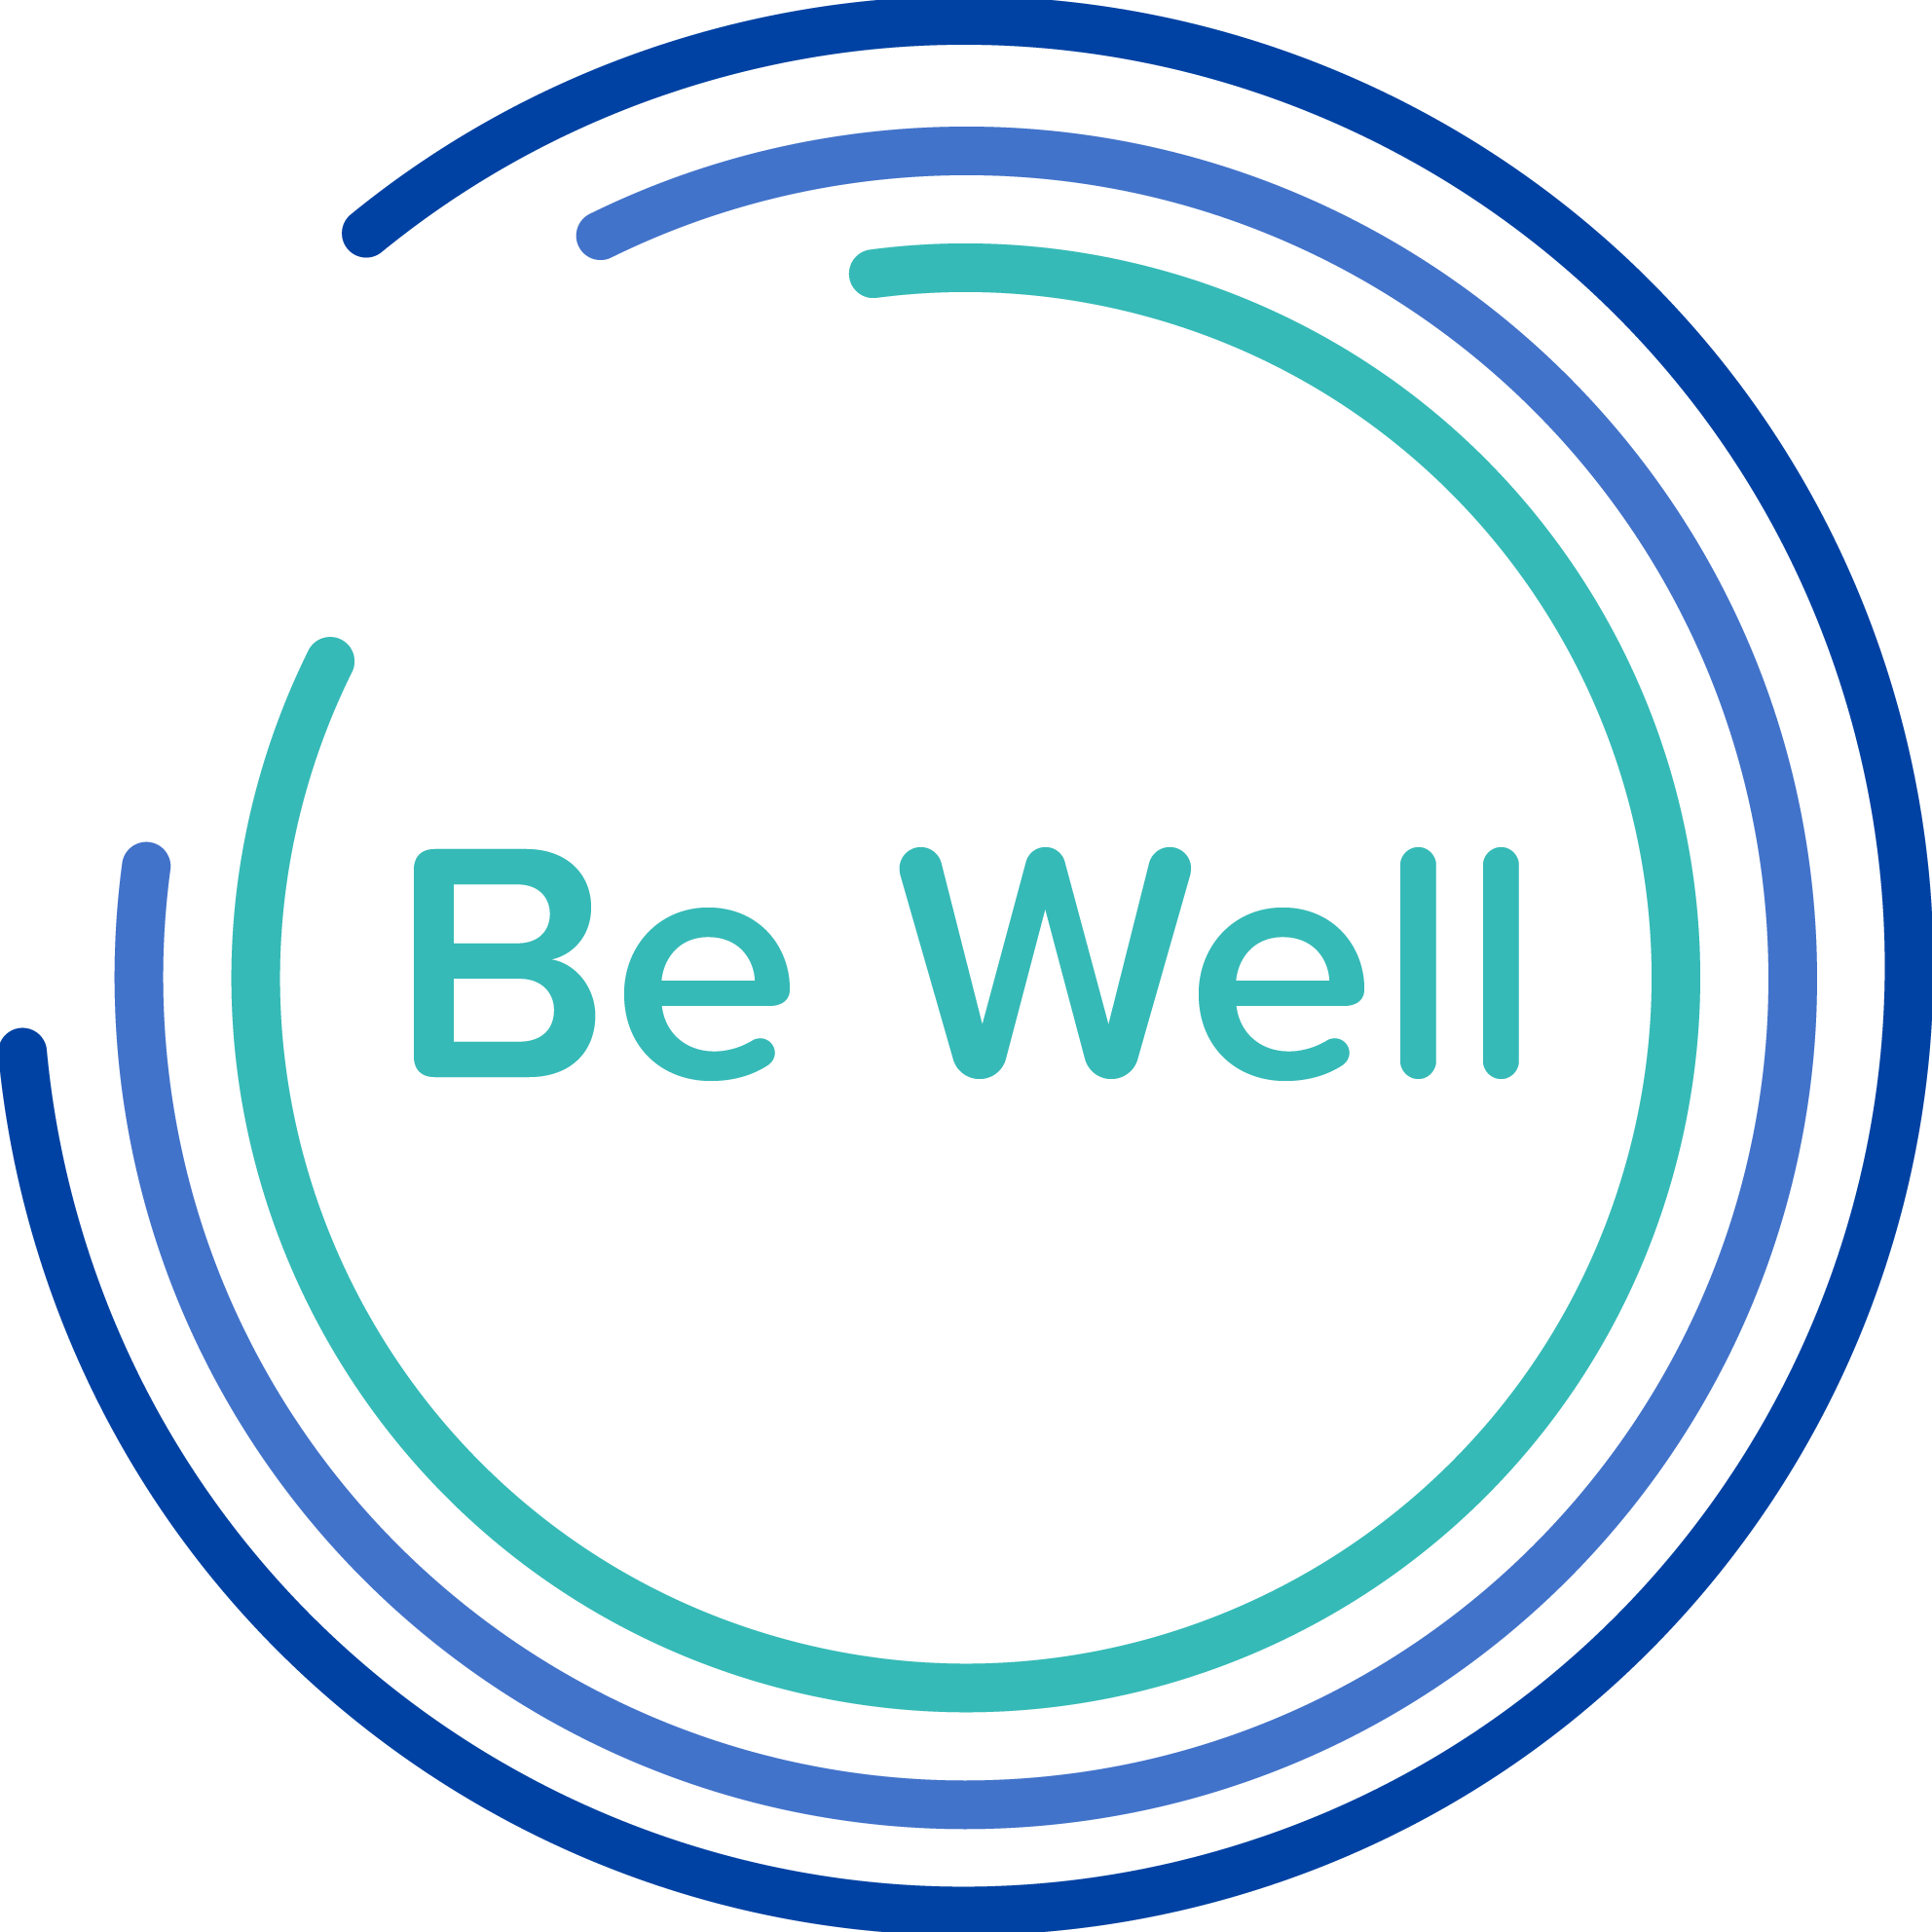 BEWELL Worker Well Being Training